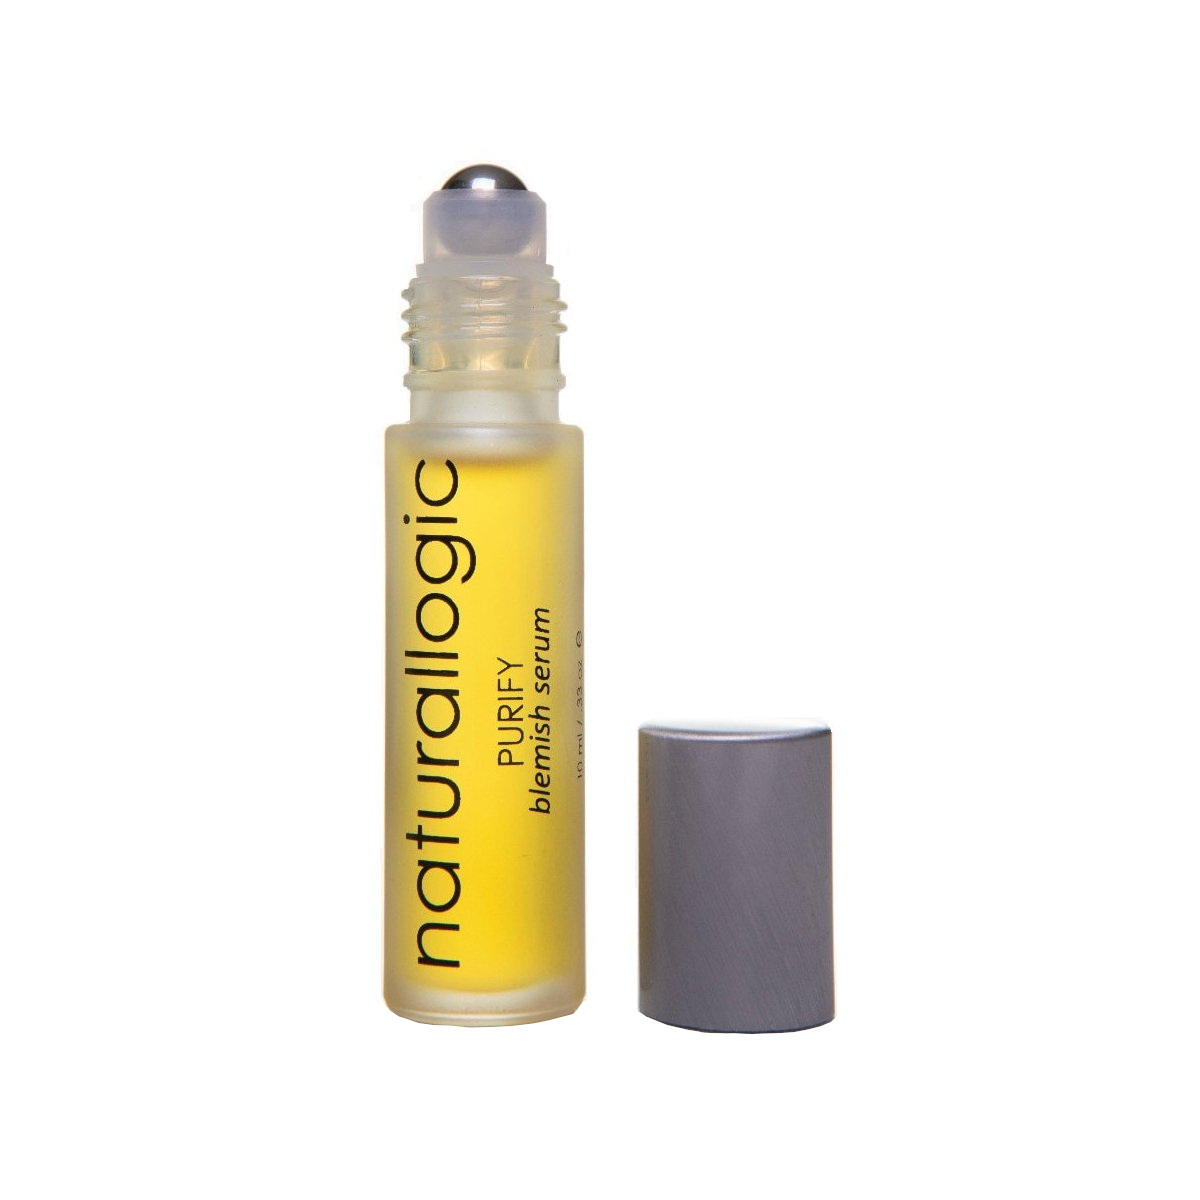 Naturallogic Purify Blemish Serum